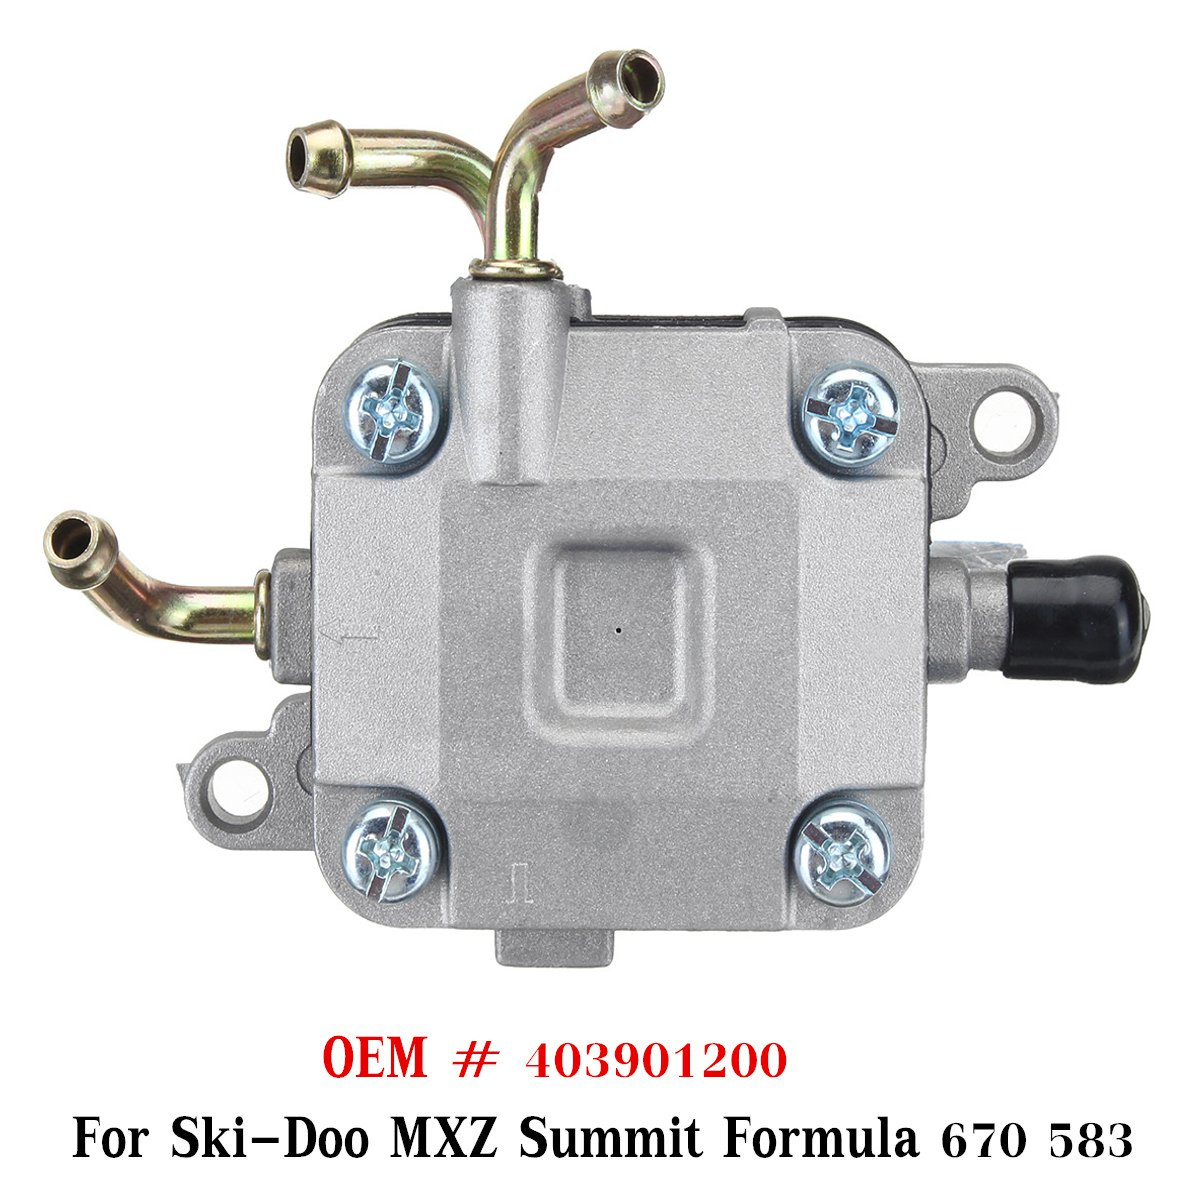 Fuel Pump Replacement Kit 403901200 For Ski Doo MXZ Summit Formula 670 583-in  Fuel Pumps from Automobiles & Motorcycles on Aliexpress.com | Alibaba Group